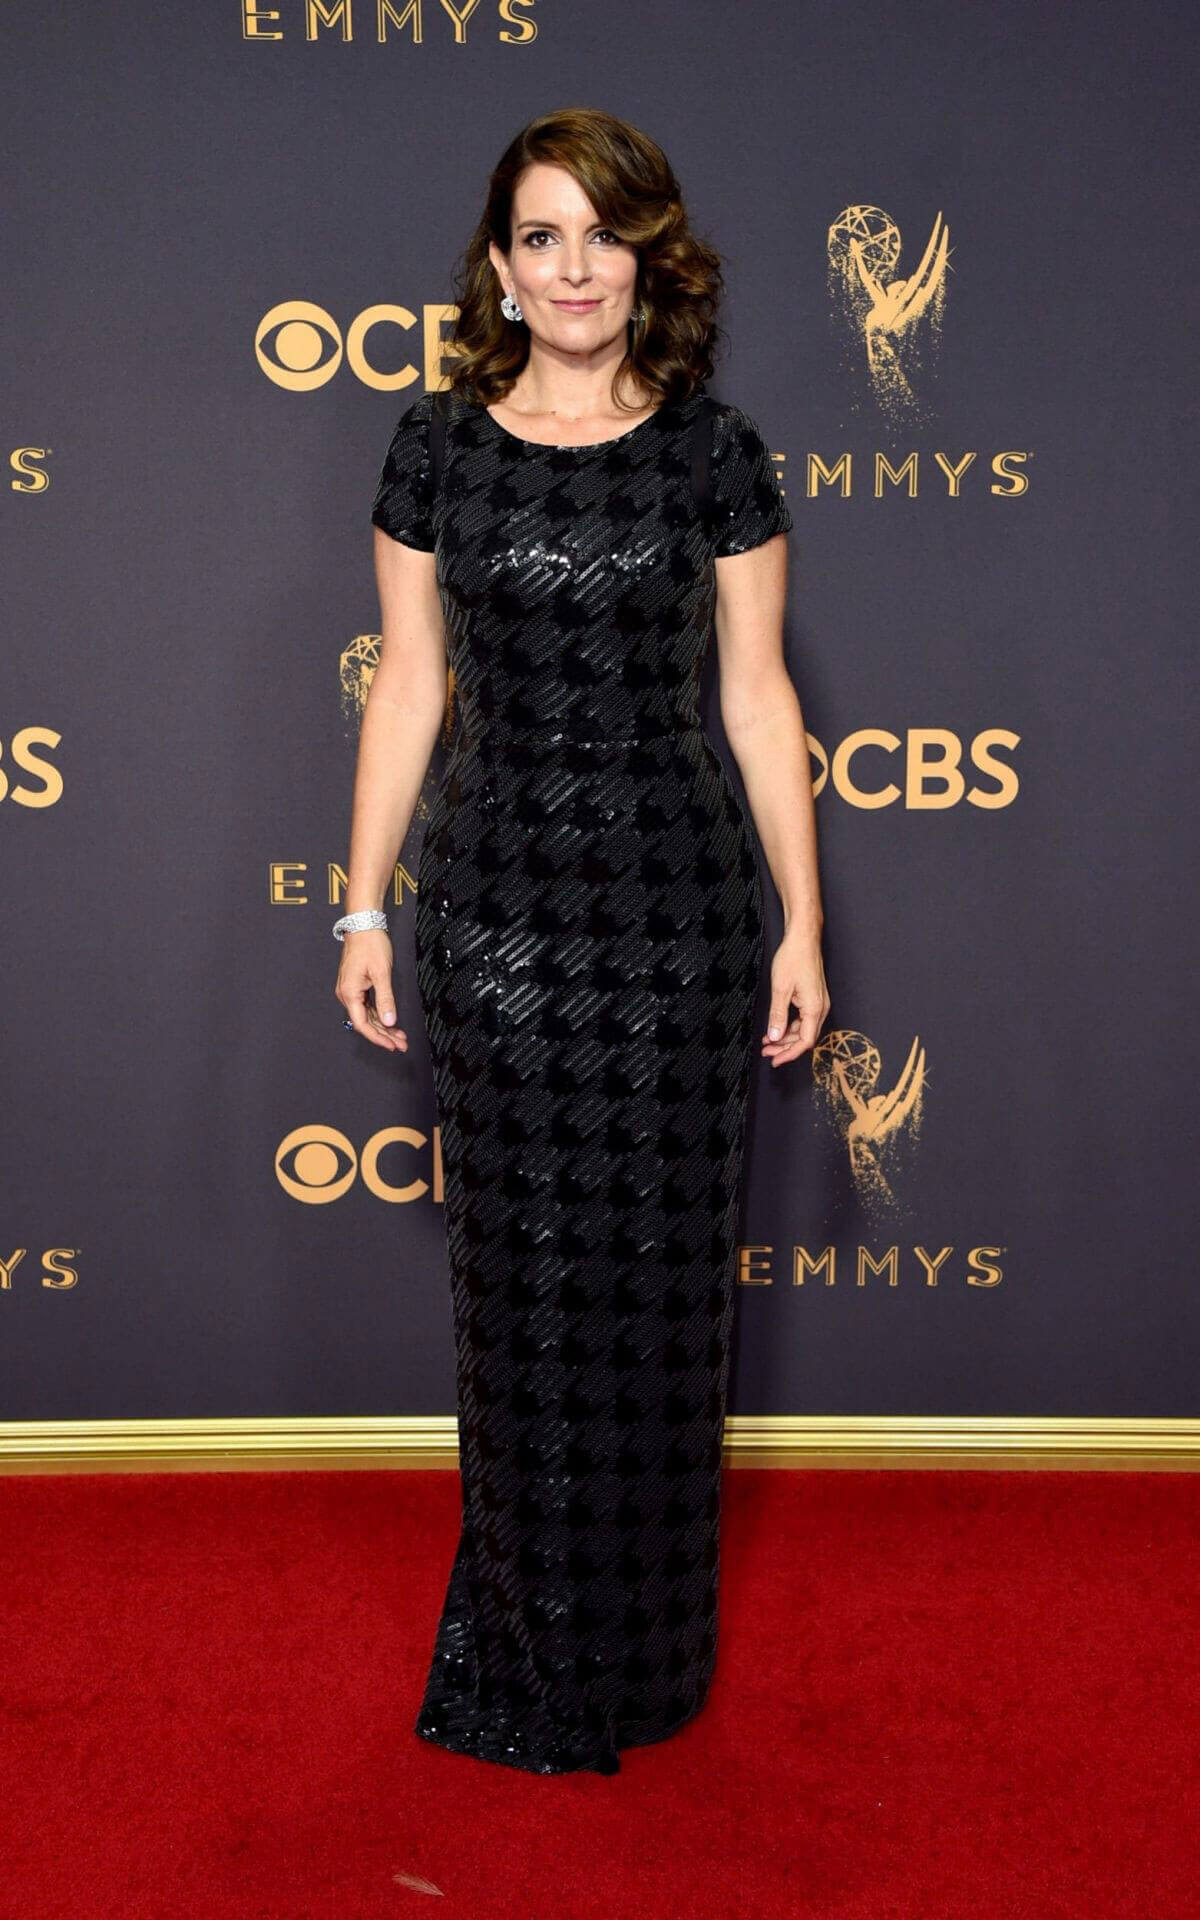 Tina Fey Stills at 69th Annual Primetime Emmy Awards in Los Angeles